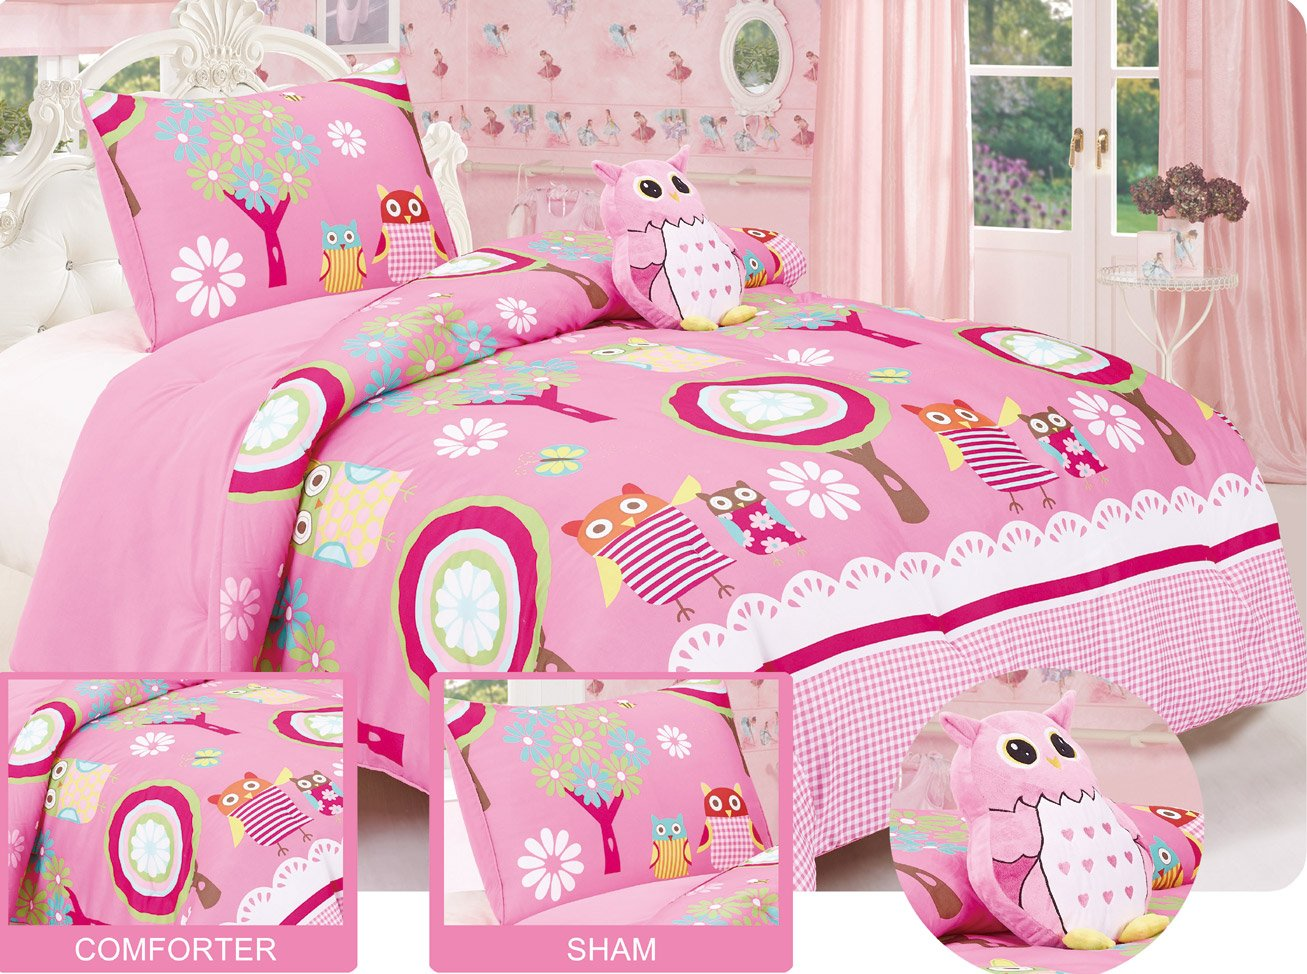 Pink bedding sets ease bedding with style - Hot pink and blue bedding ...